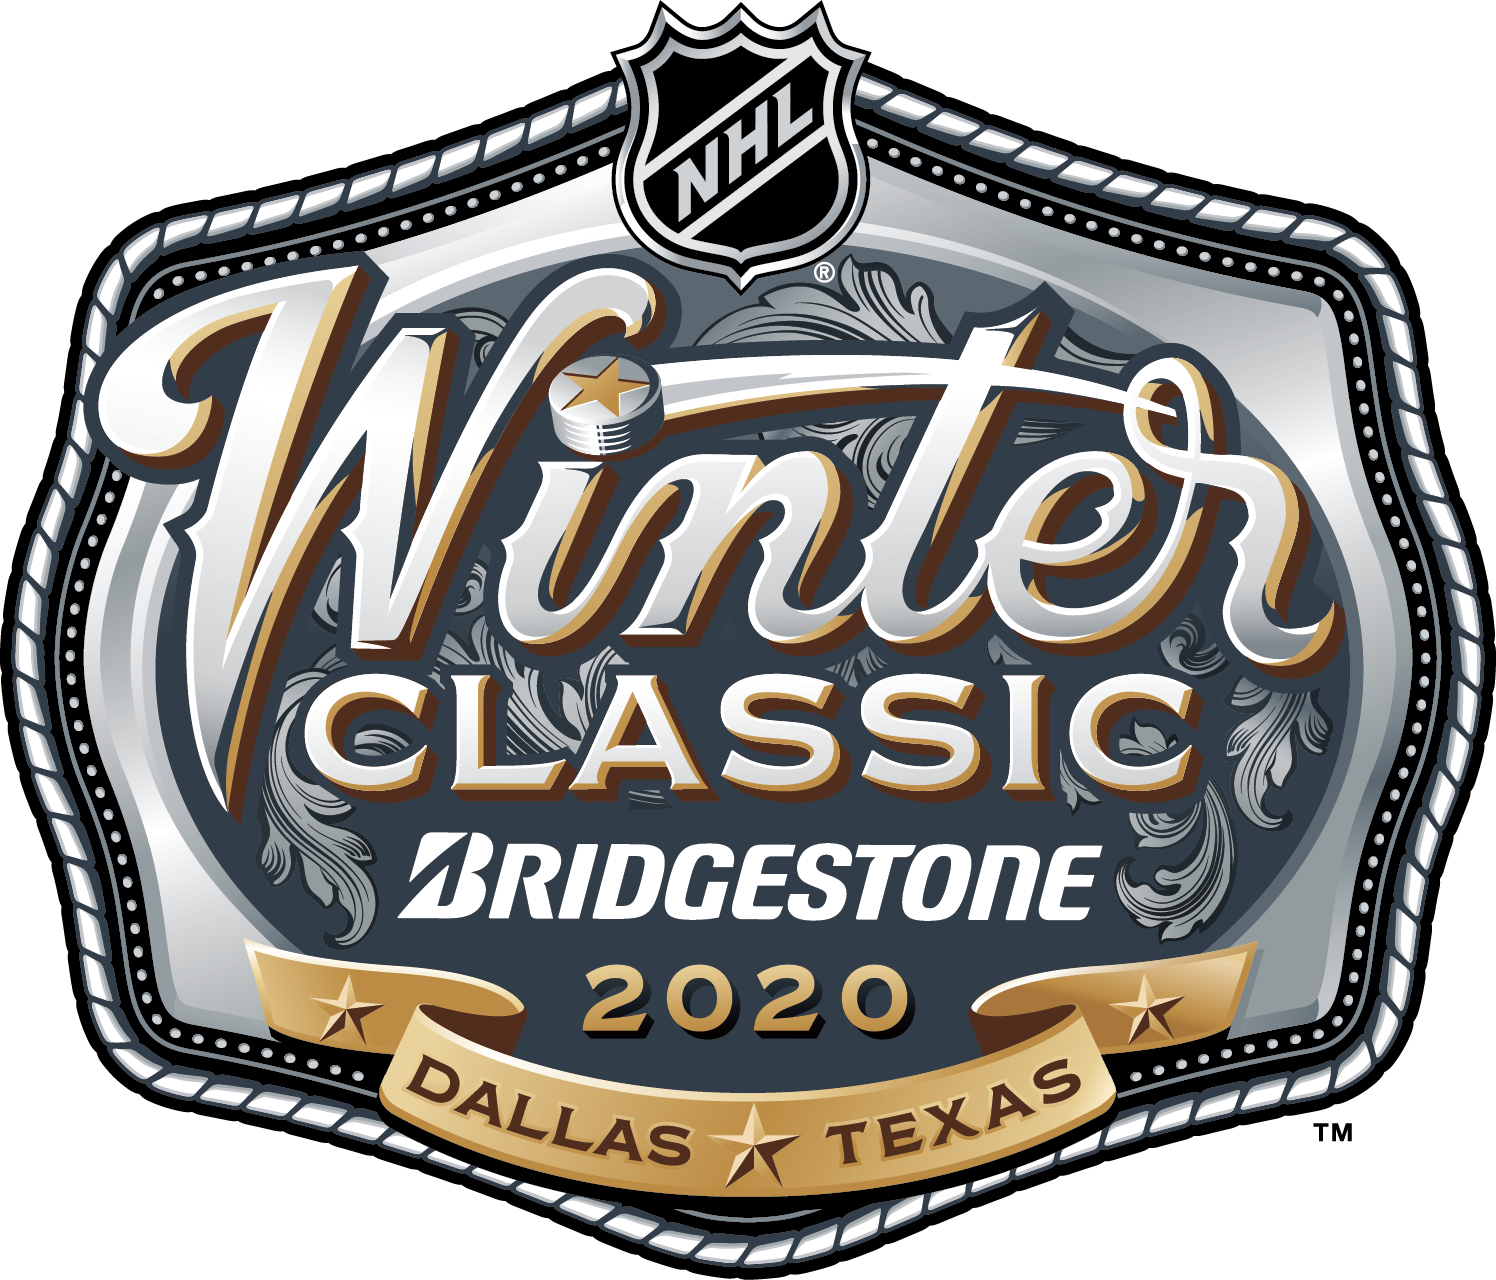 Nhl Winter ClaГџic 2020